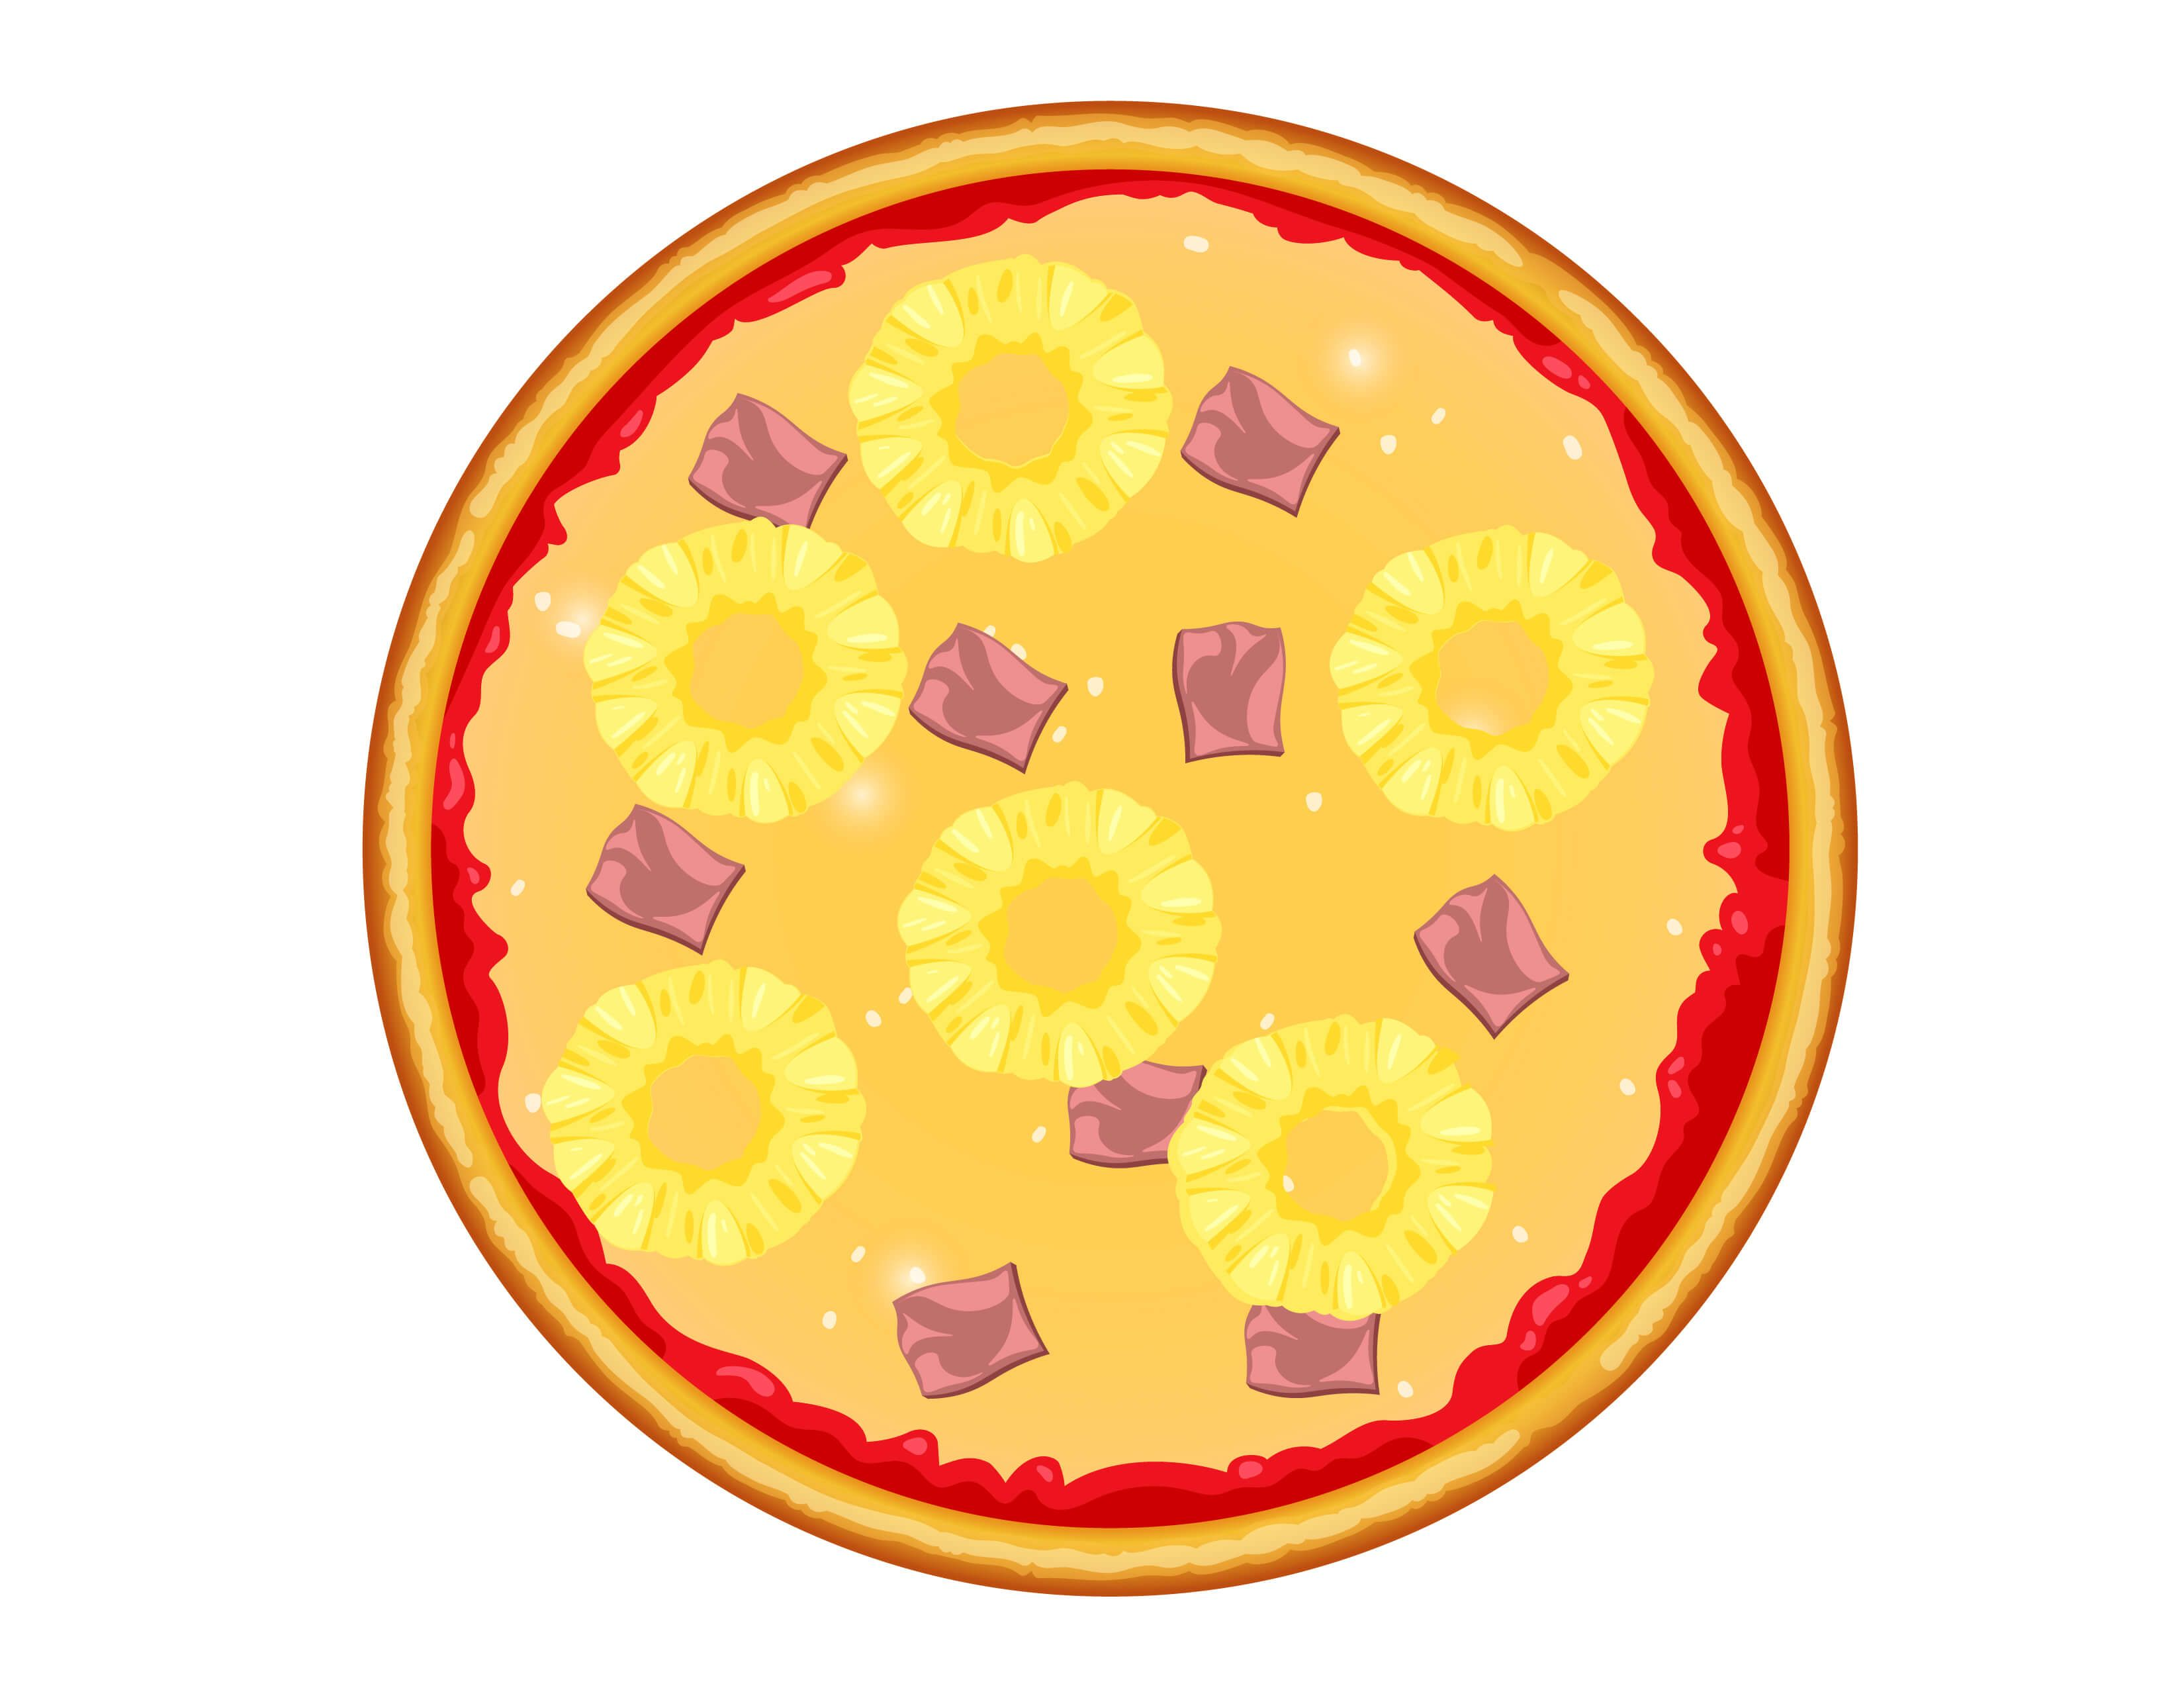 Make A Pizza Printable Pizza Toppings Cutouts Mrs Merry In 2021 How To Make Pizza Printables Free Kids Diy Crafts For Kids Easy [ 2550 x 3300 Pixel ]